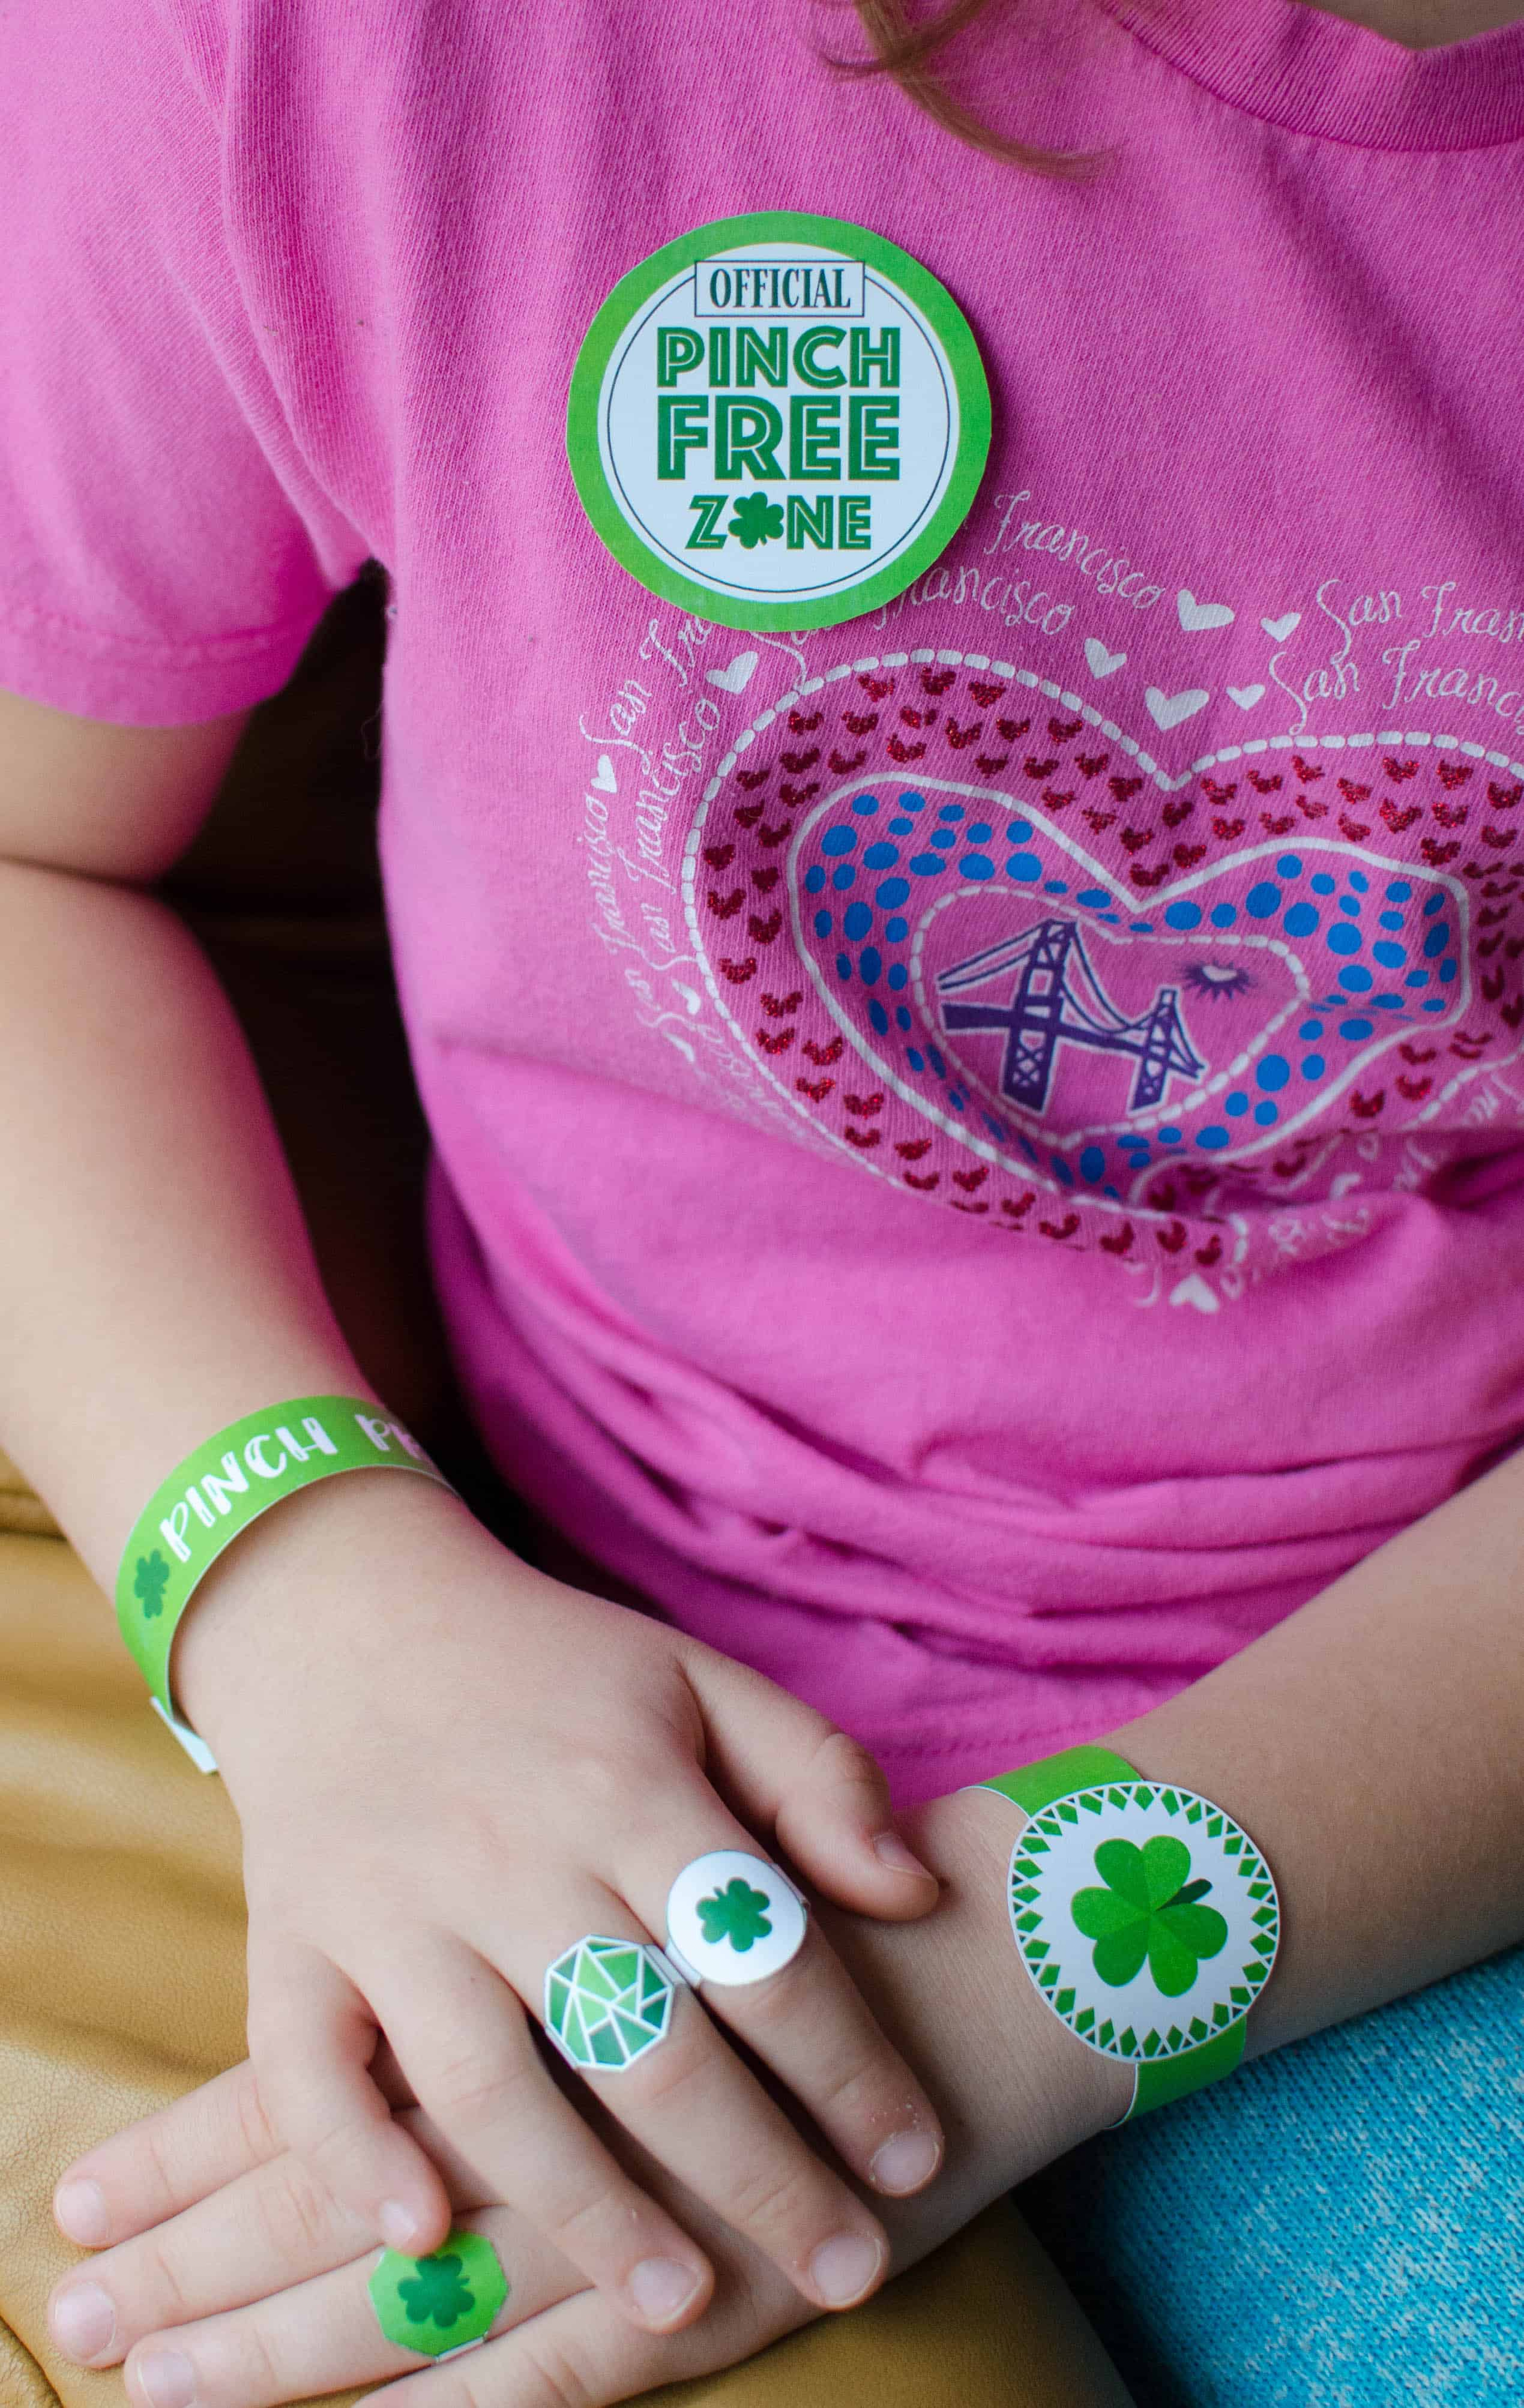 Don't worry if you don't have green in your wardrobe. Print out these St. Patricks Day badges, bracelets, and rings to add a touch of green to your outfit and stay totally Pinch Proof. #StPatricksDay